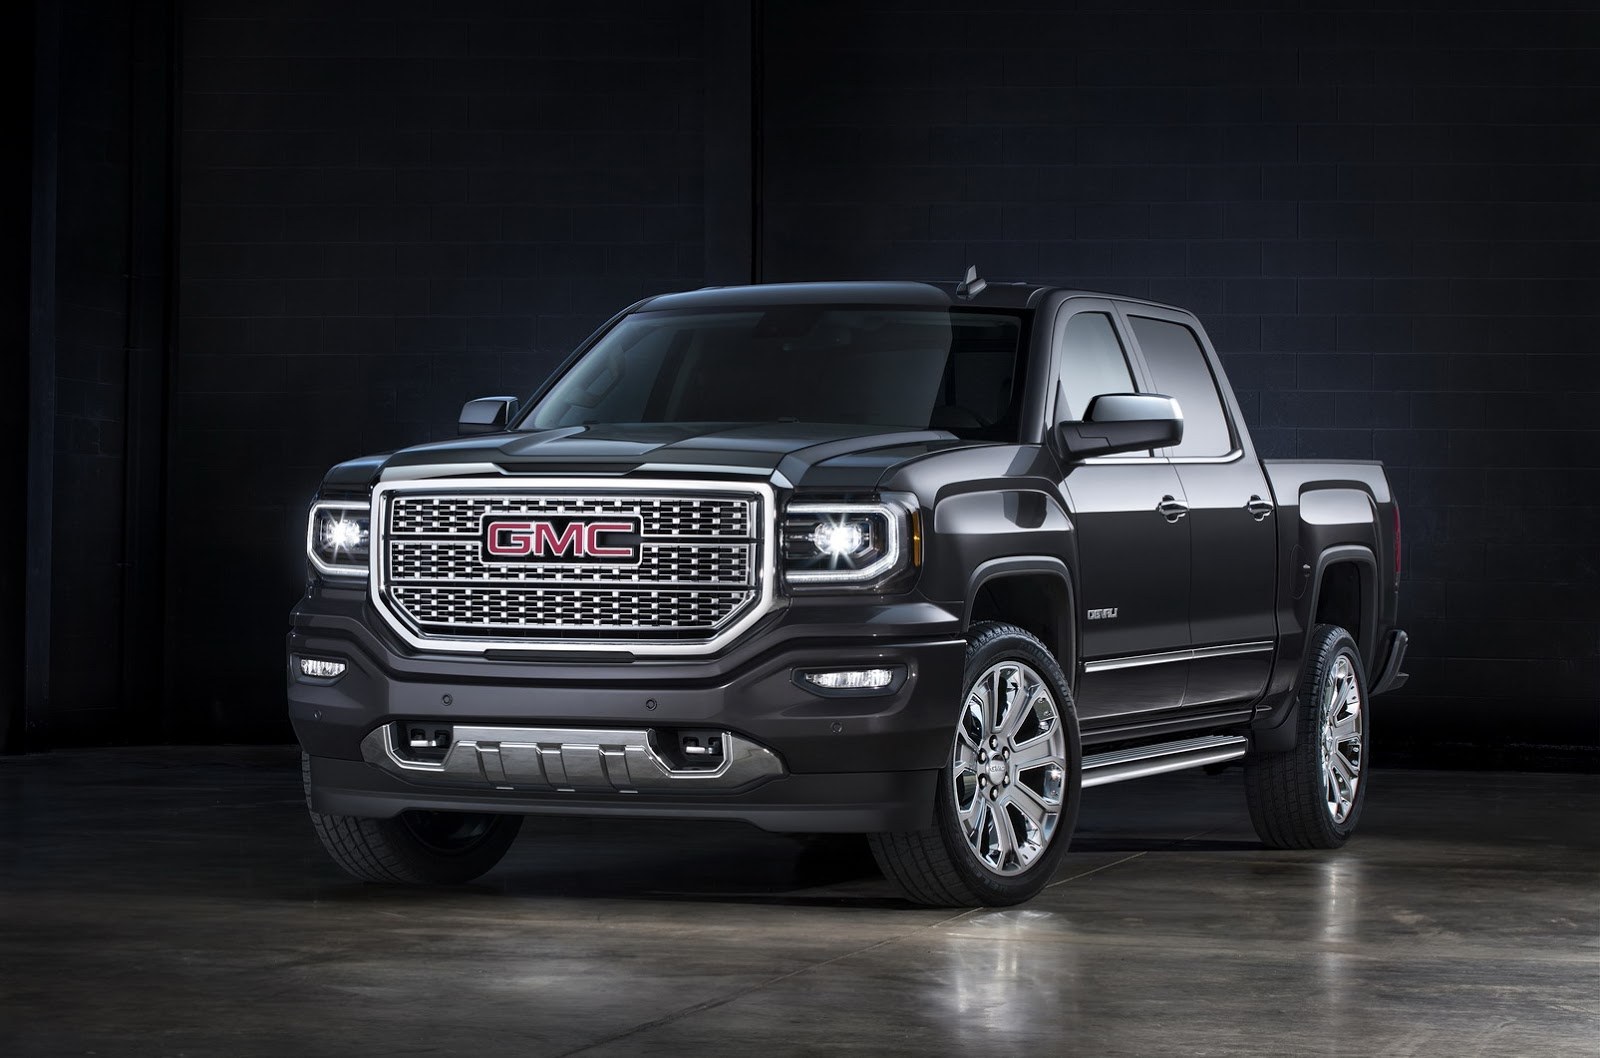 Parting out 1994 gmc sierra and 1996 chevy 1500 trucks - Vwvortex Com 2016 Gmc Sierra Denali Ultimate Revealed The Pinnacle Of Premium